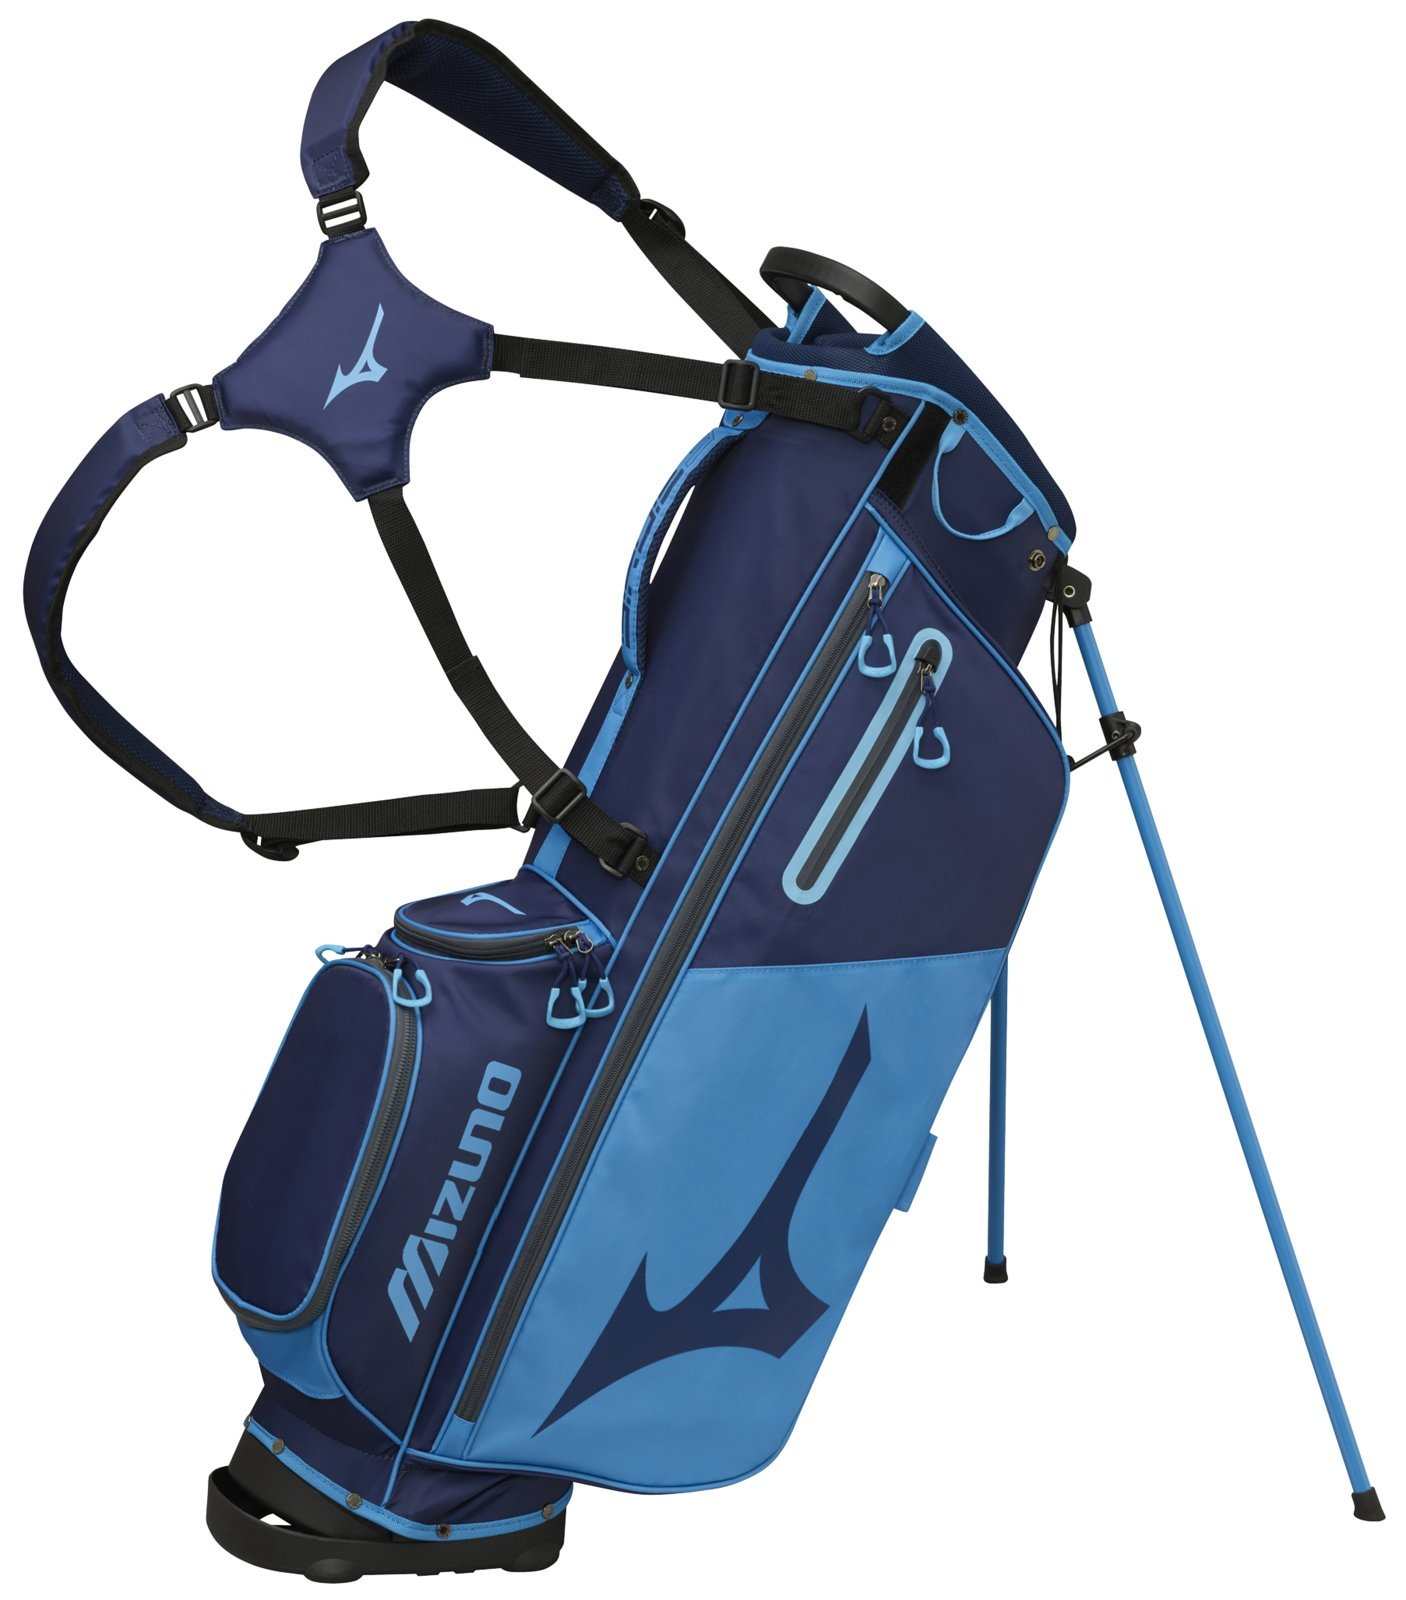 Mizuno 2018 BR-D3 Stand Golf Bag, Navy/Light Blue